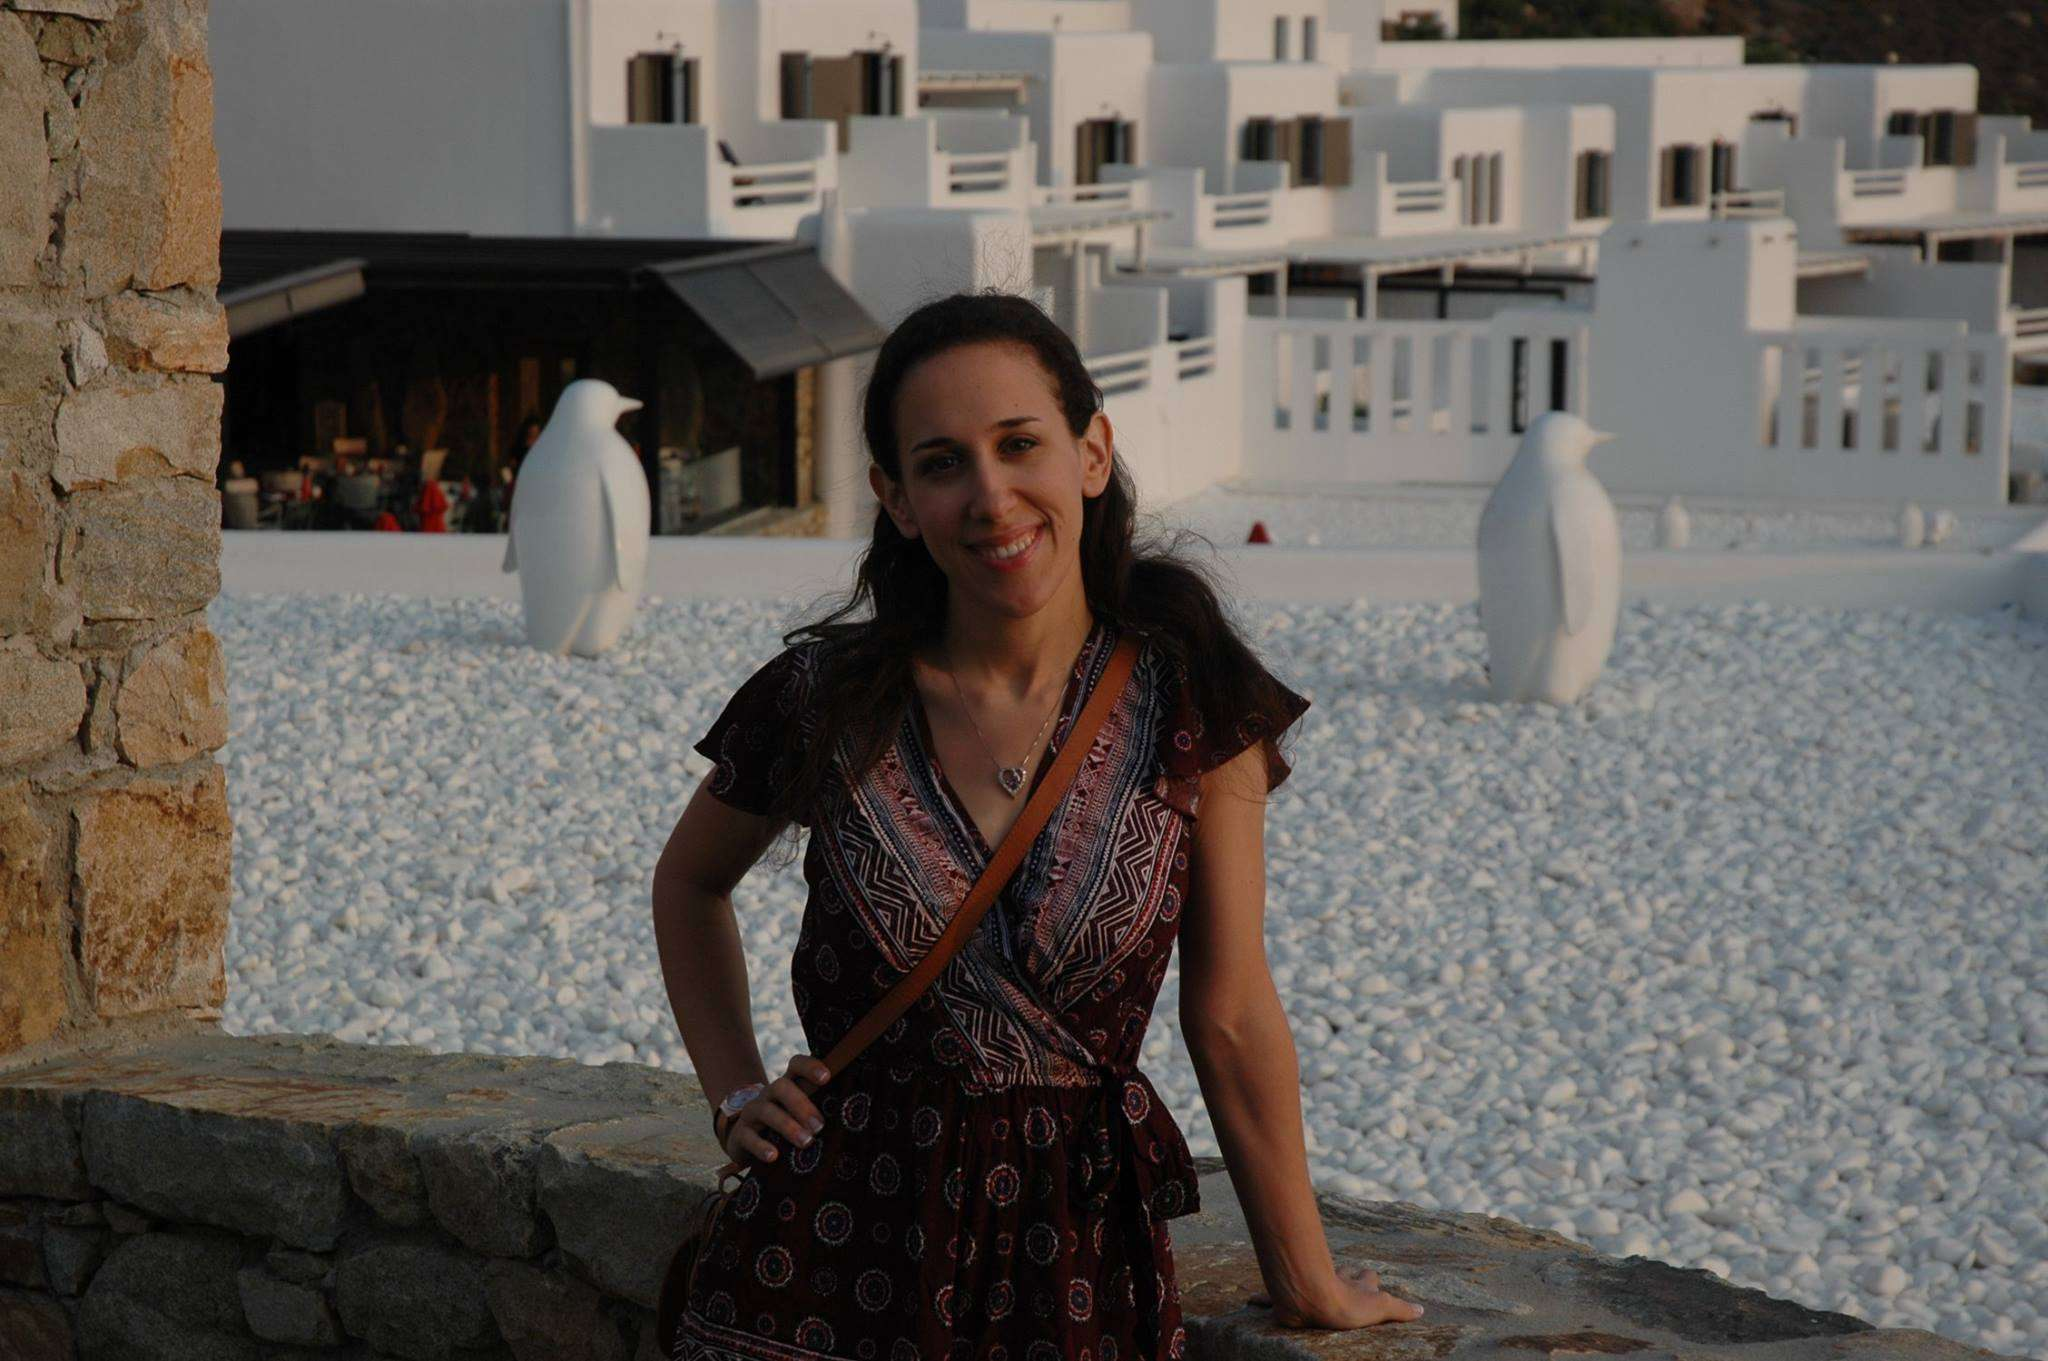 Posing with the penguin statues at the Myconian Avaton Resort